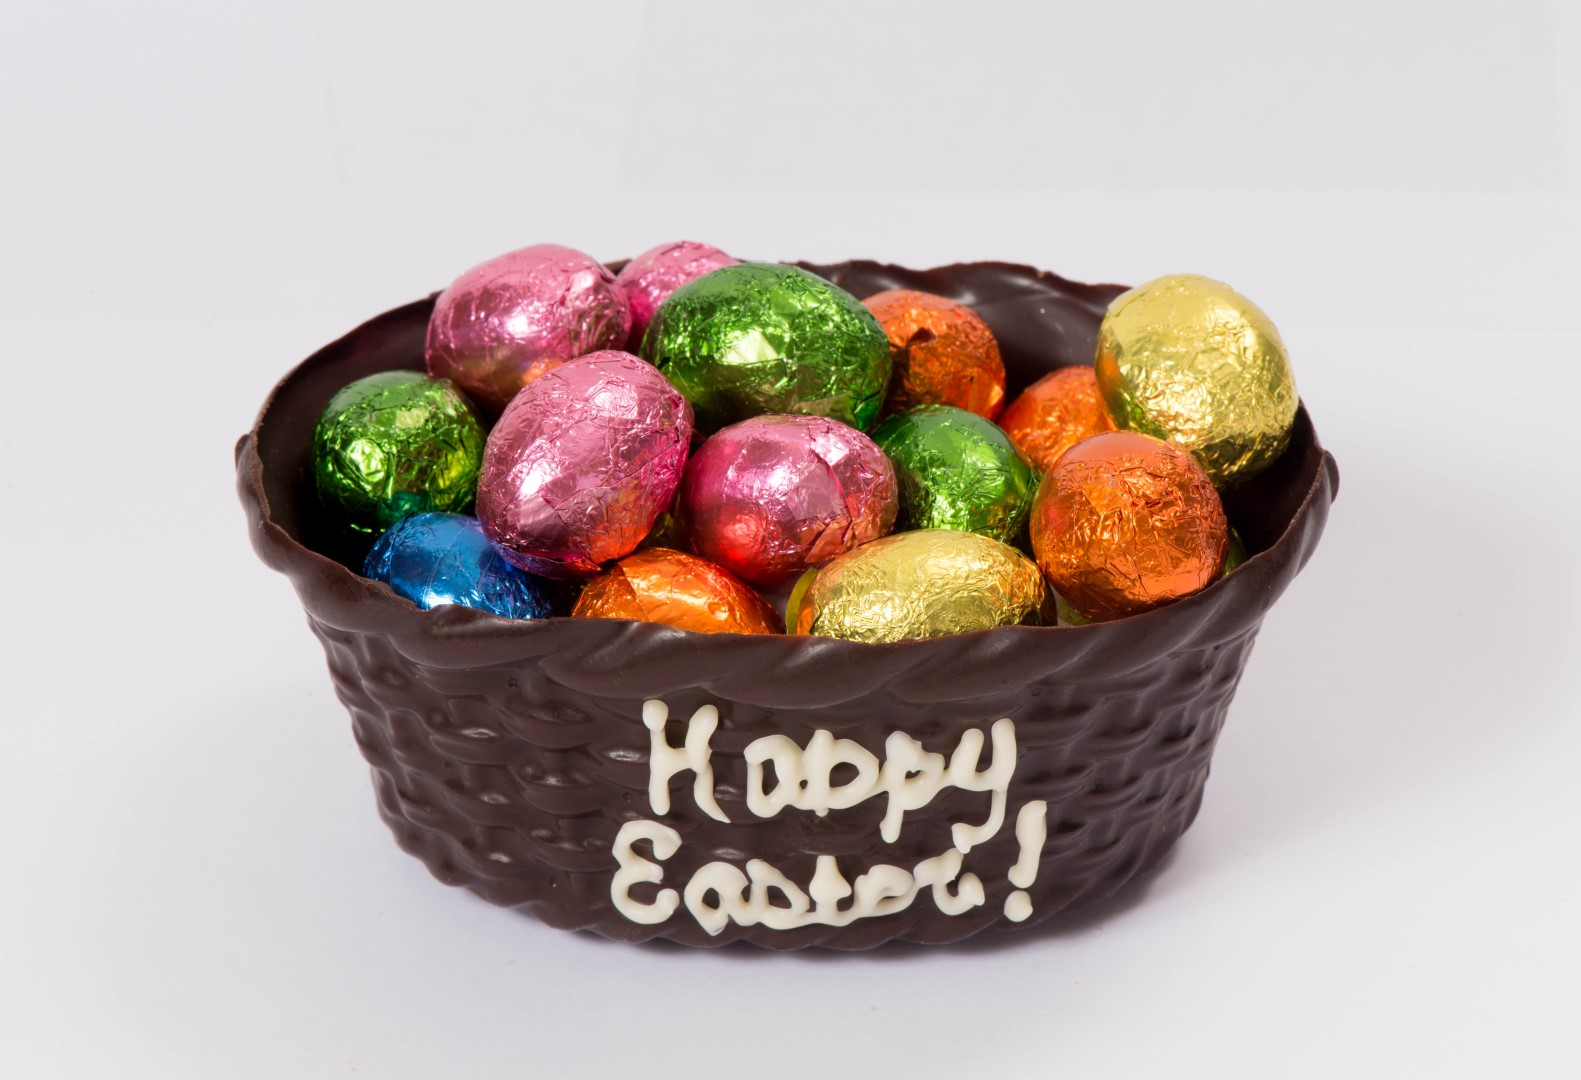 Chocolate Easter Basket Filled with Chocolate Eggs